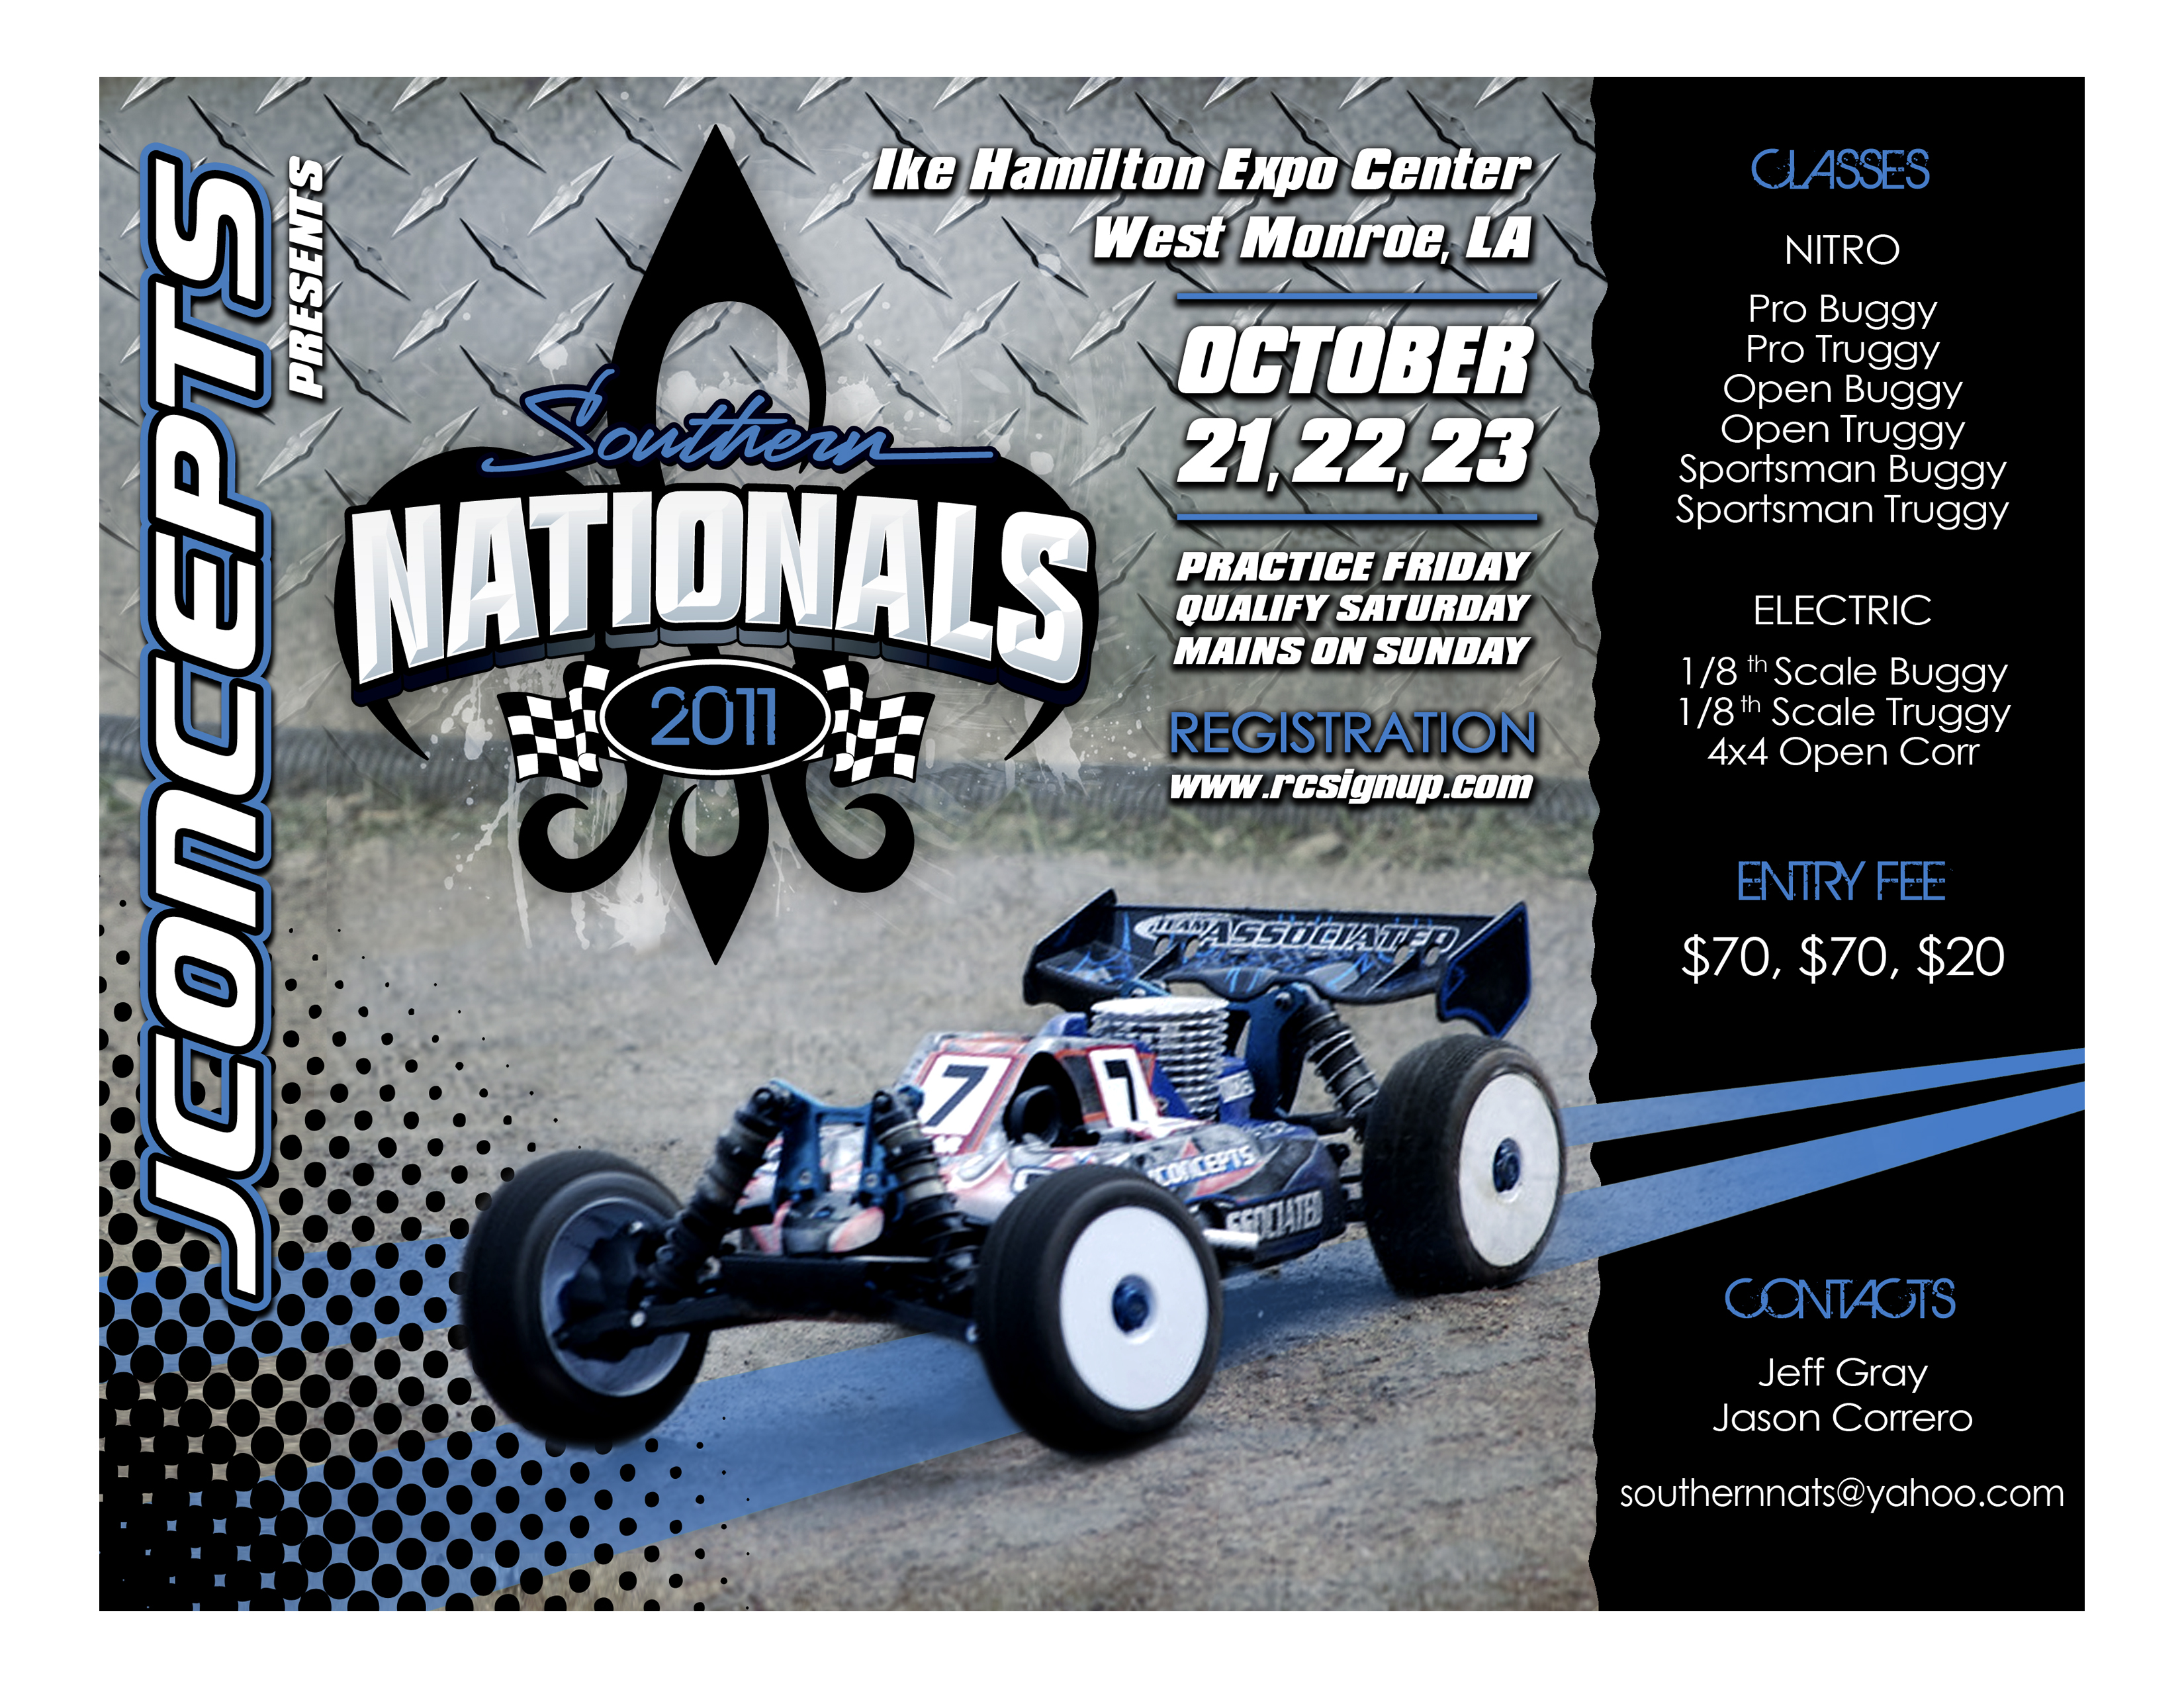 The 2011 Southern Nationals Is Fast Approaching – JConcepts Blog